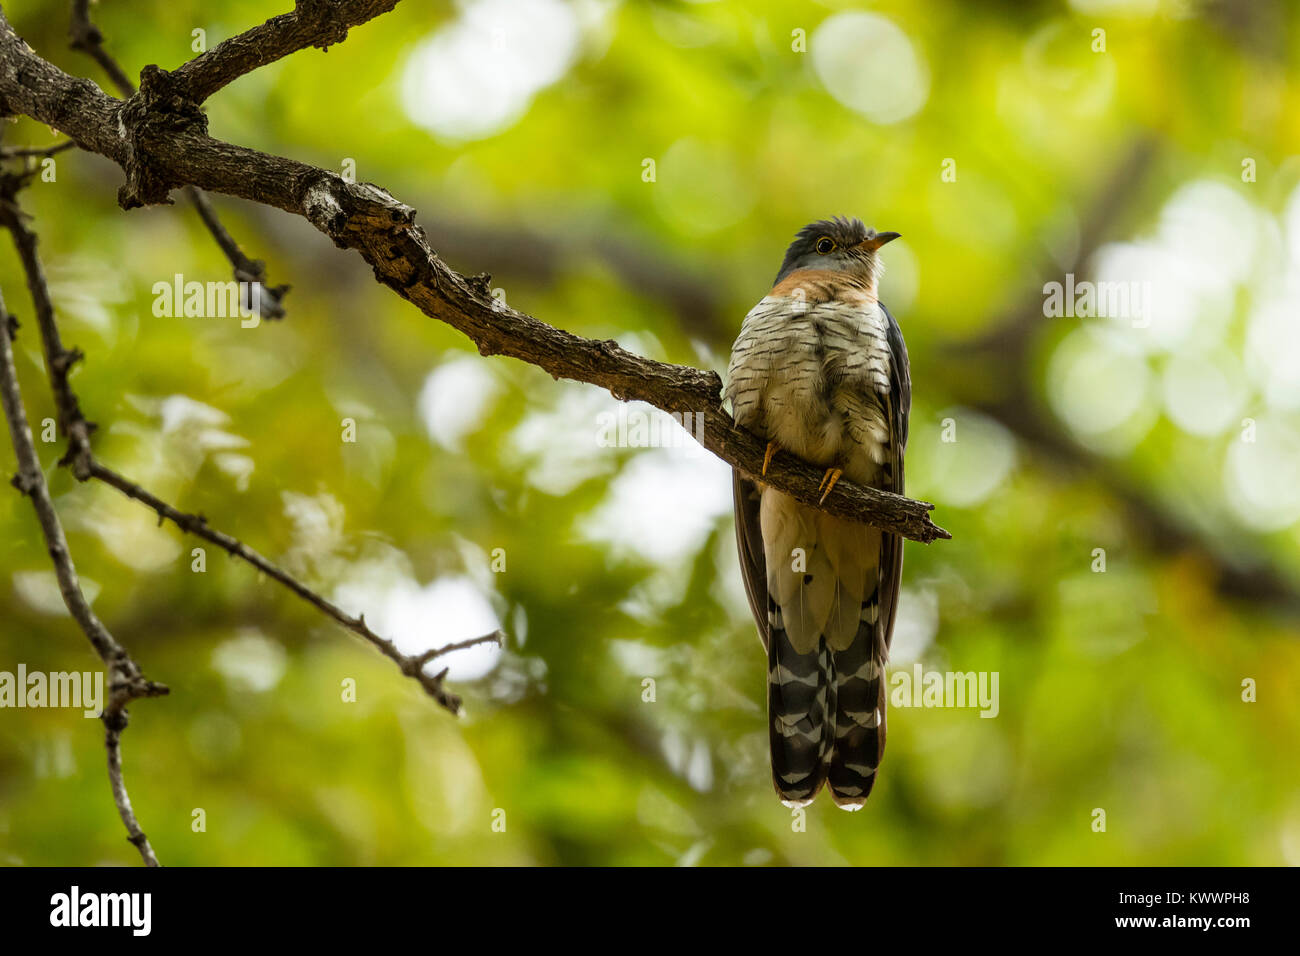 Red-chested Cuckoo (Cuculus solitarius), Stock Photo